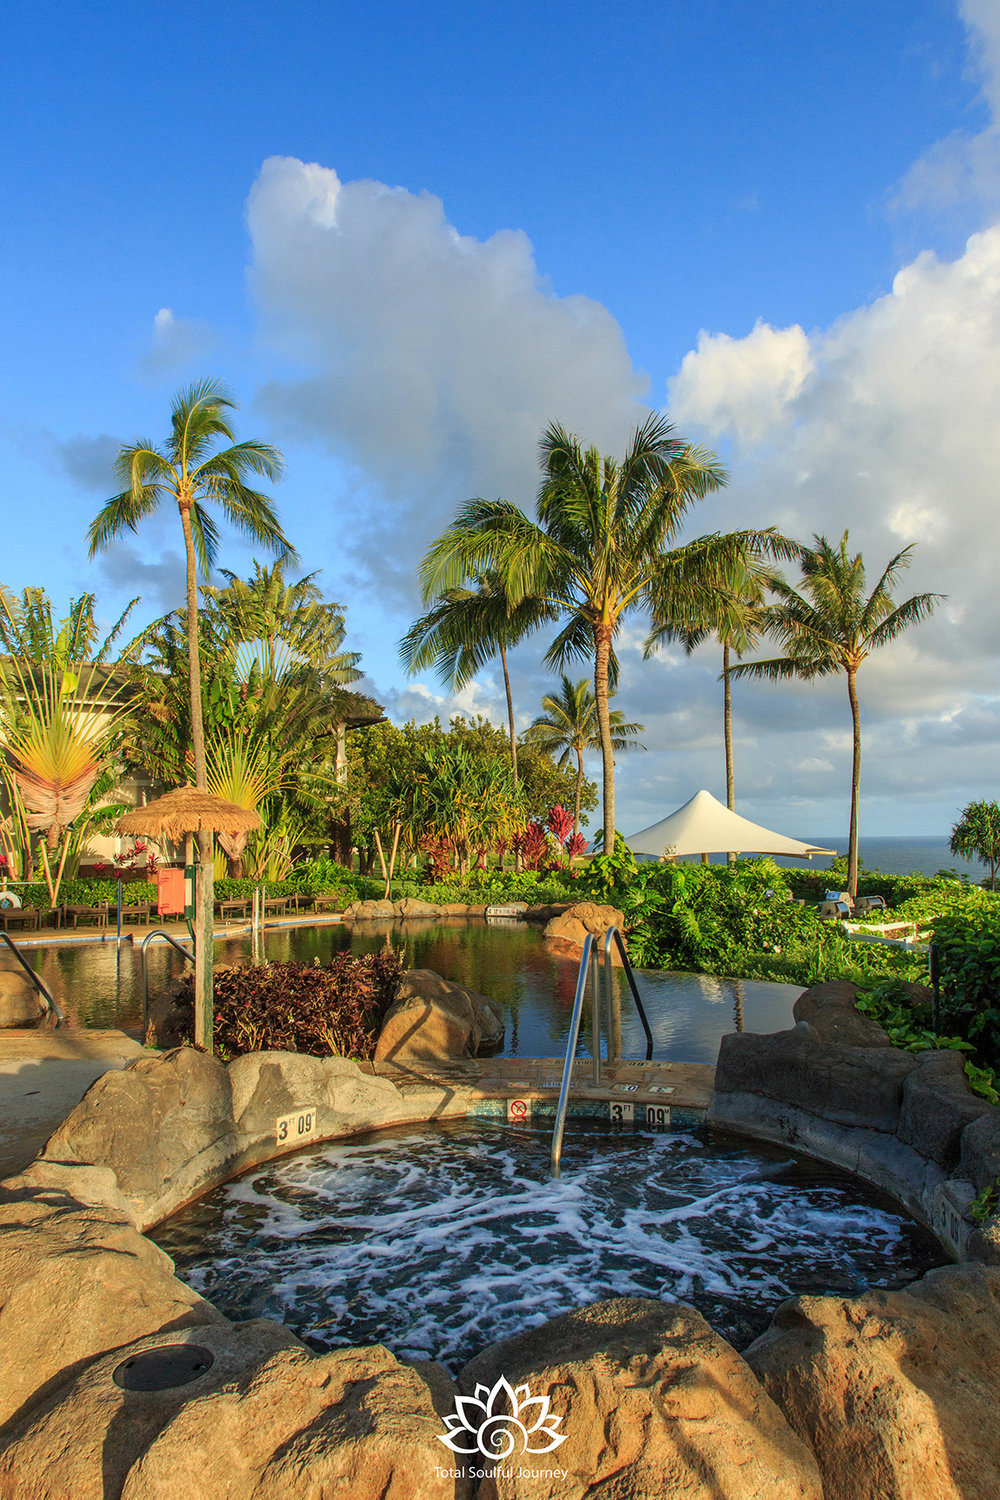 The Westin Princeville Ocean Villas Resort photographed by Paul Garrett